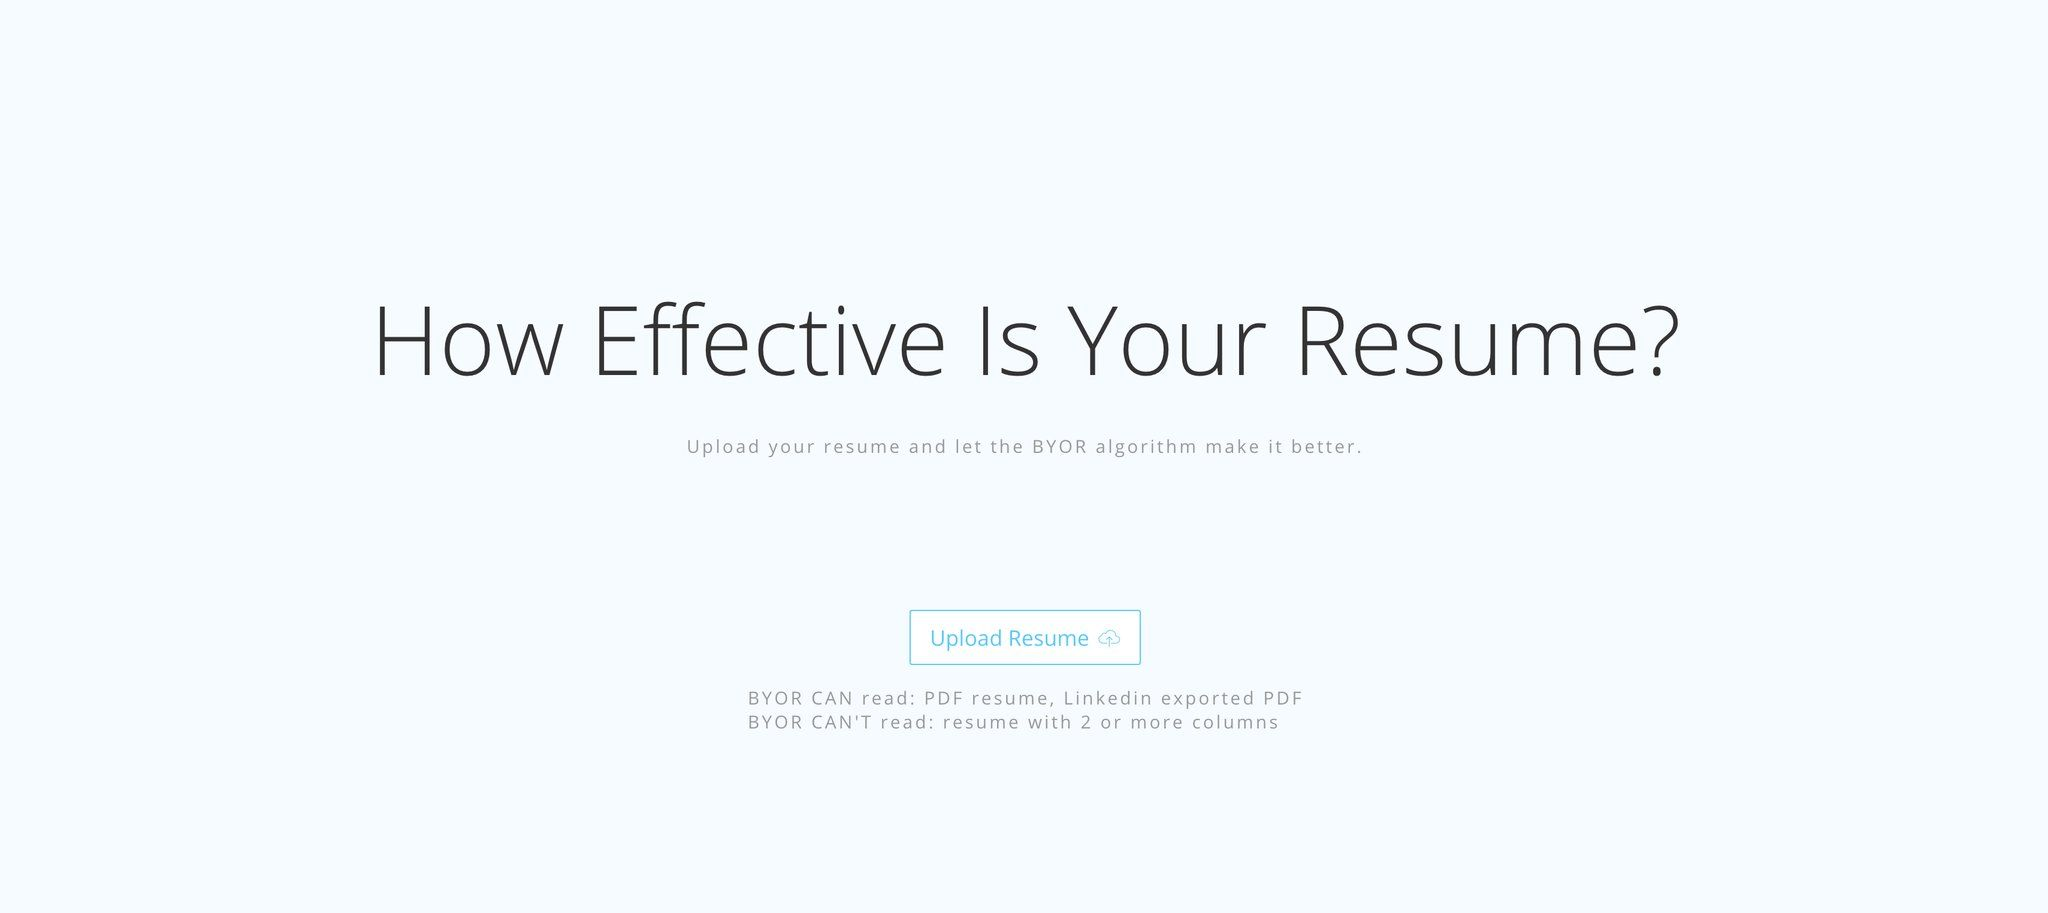 Upload your resume and have AI analyze it to see if it's  https://t.co/Y2DRRWZn9X https://t.co/xtuUADyo3e